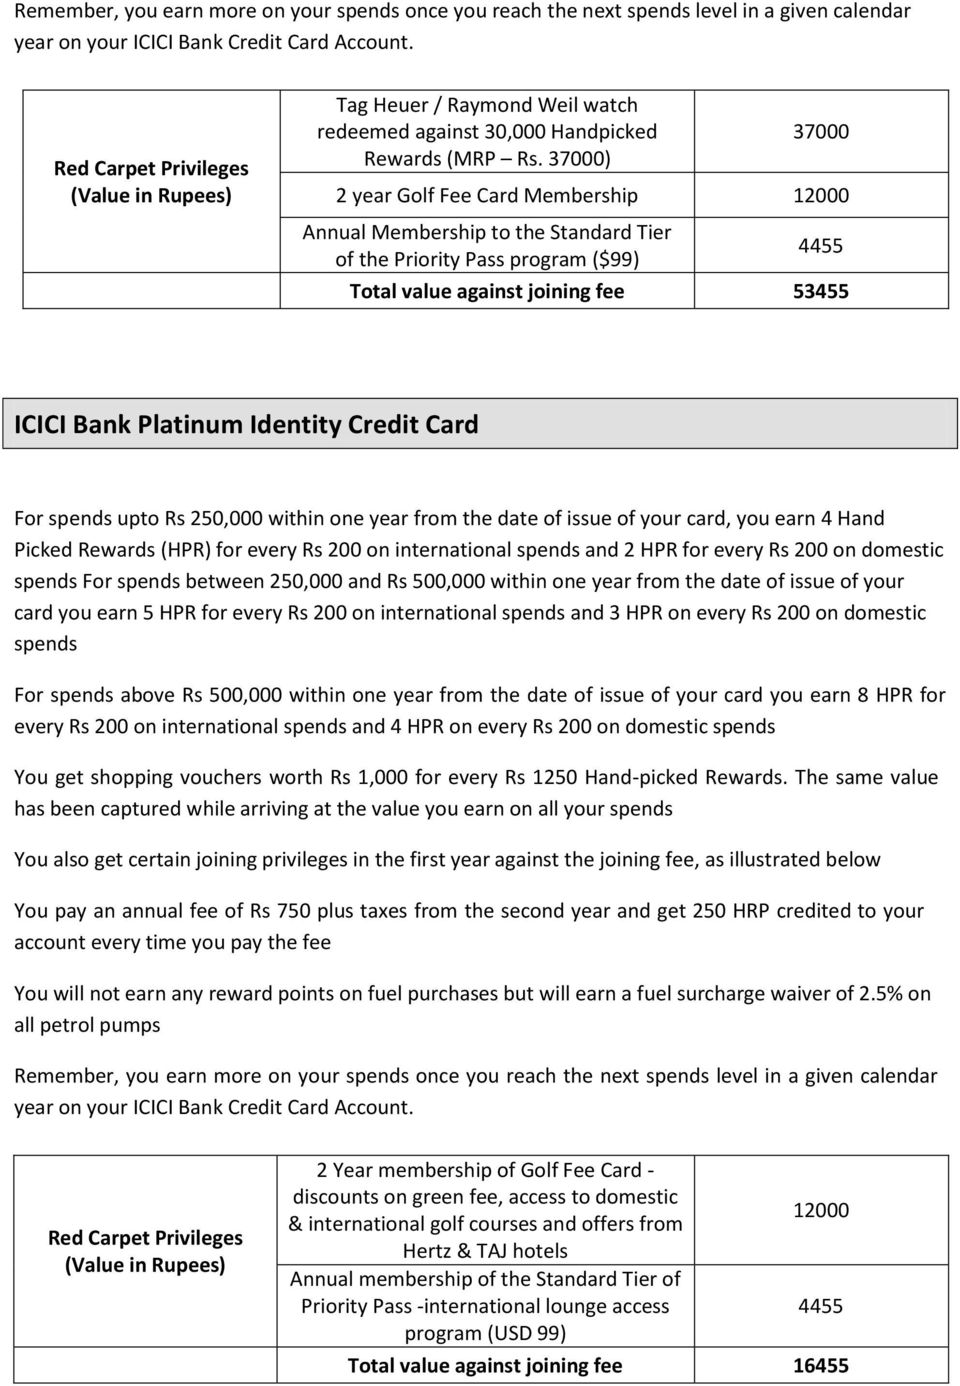 37000) 37000 2 year Golf Fee Card Membership 12000 Annual Membership to the Standard Tier of the Priority Pass program ($99) 4455 Total value against joining fee 53455 ICICI Bank Platinum Identity